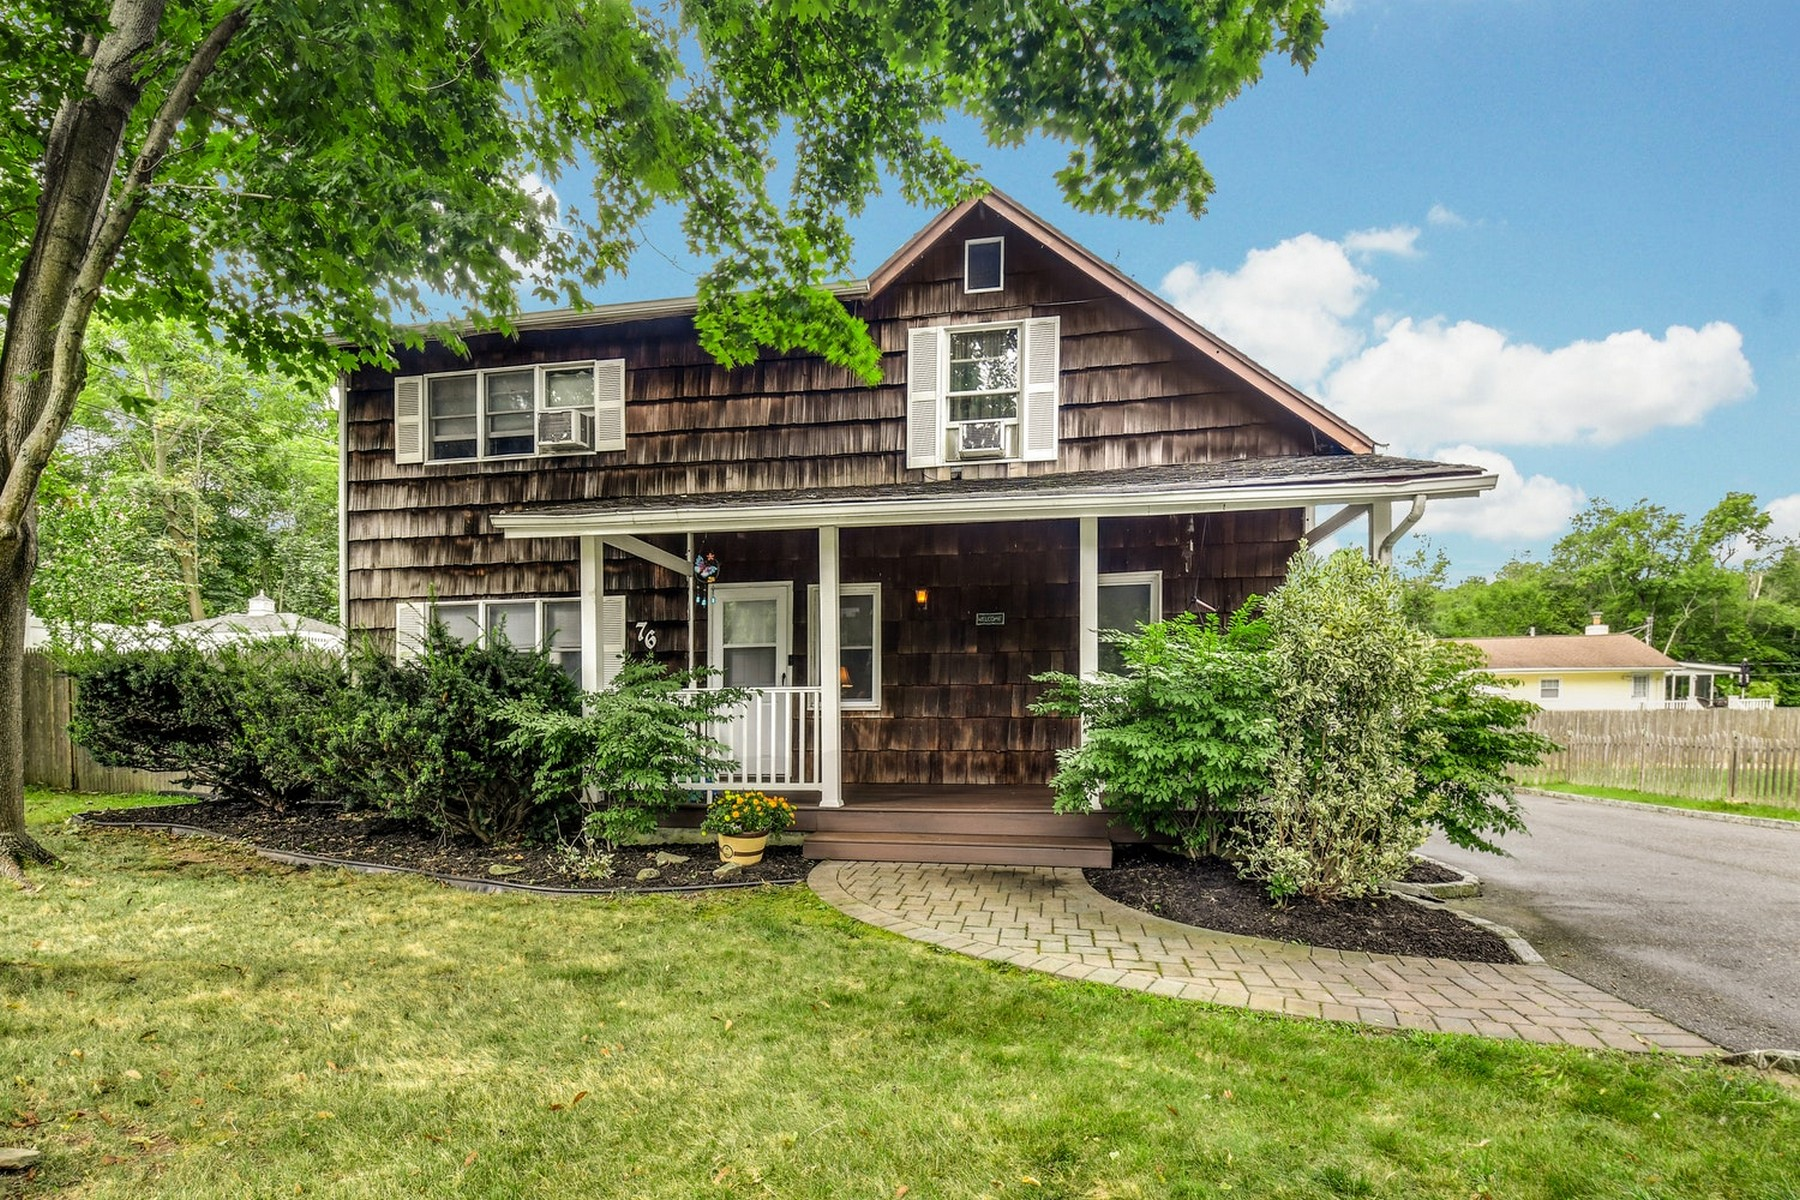 Single Family Homes for Active at Kings Park 76 Magnolia Dr Kings Park, New York 11754 United States